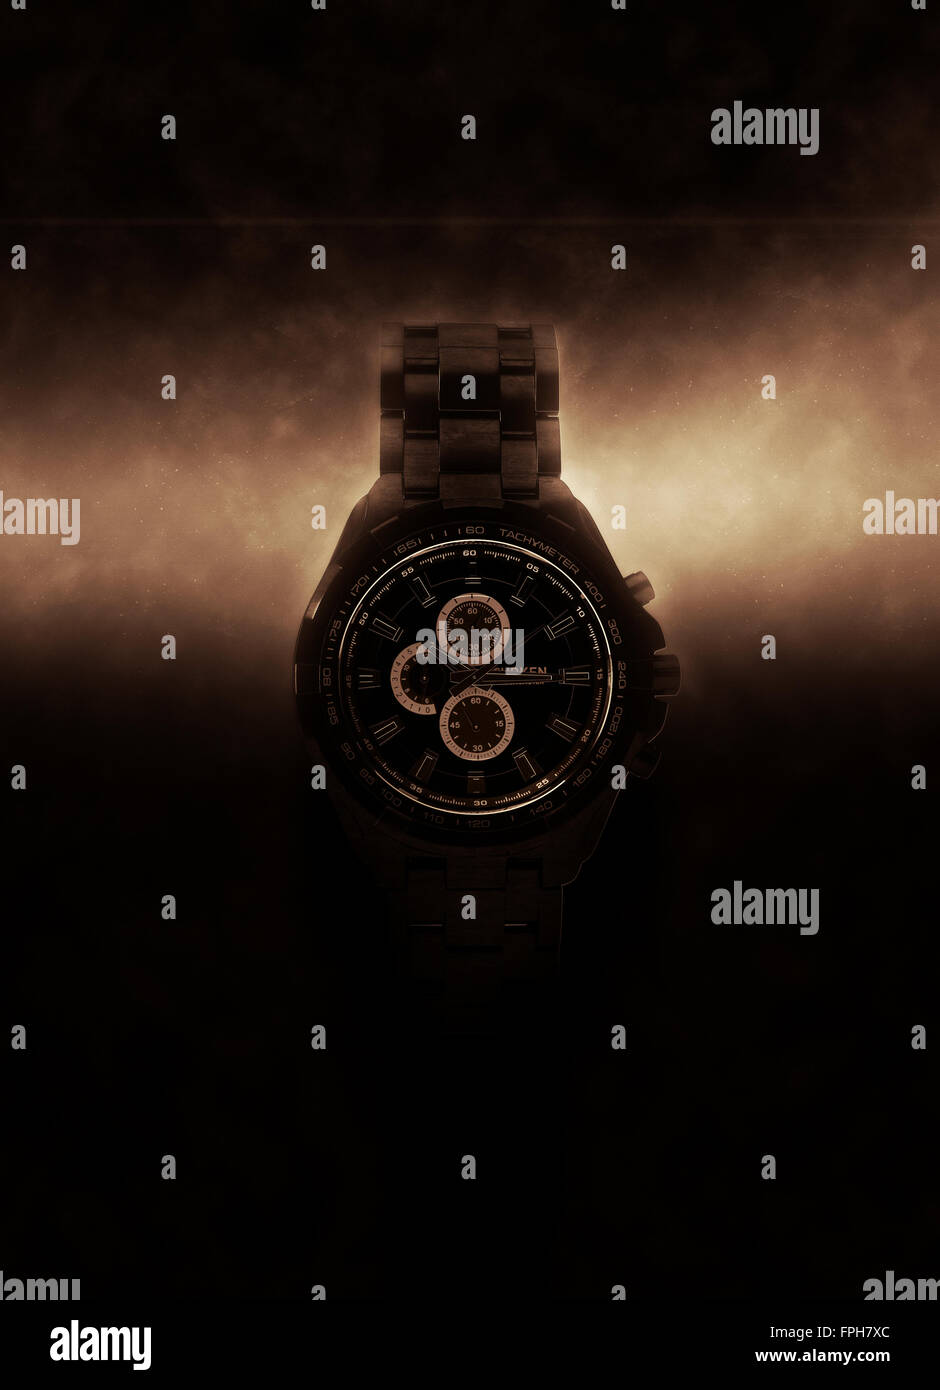 Luxury Design Black Wristwatch Chronograph Lit Dramatically from Side on Dark Background with Glowing Effect - Stock Image